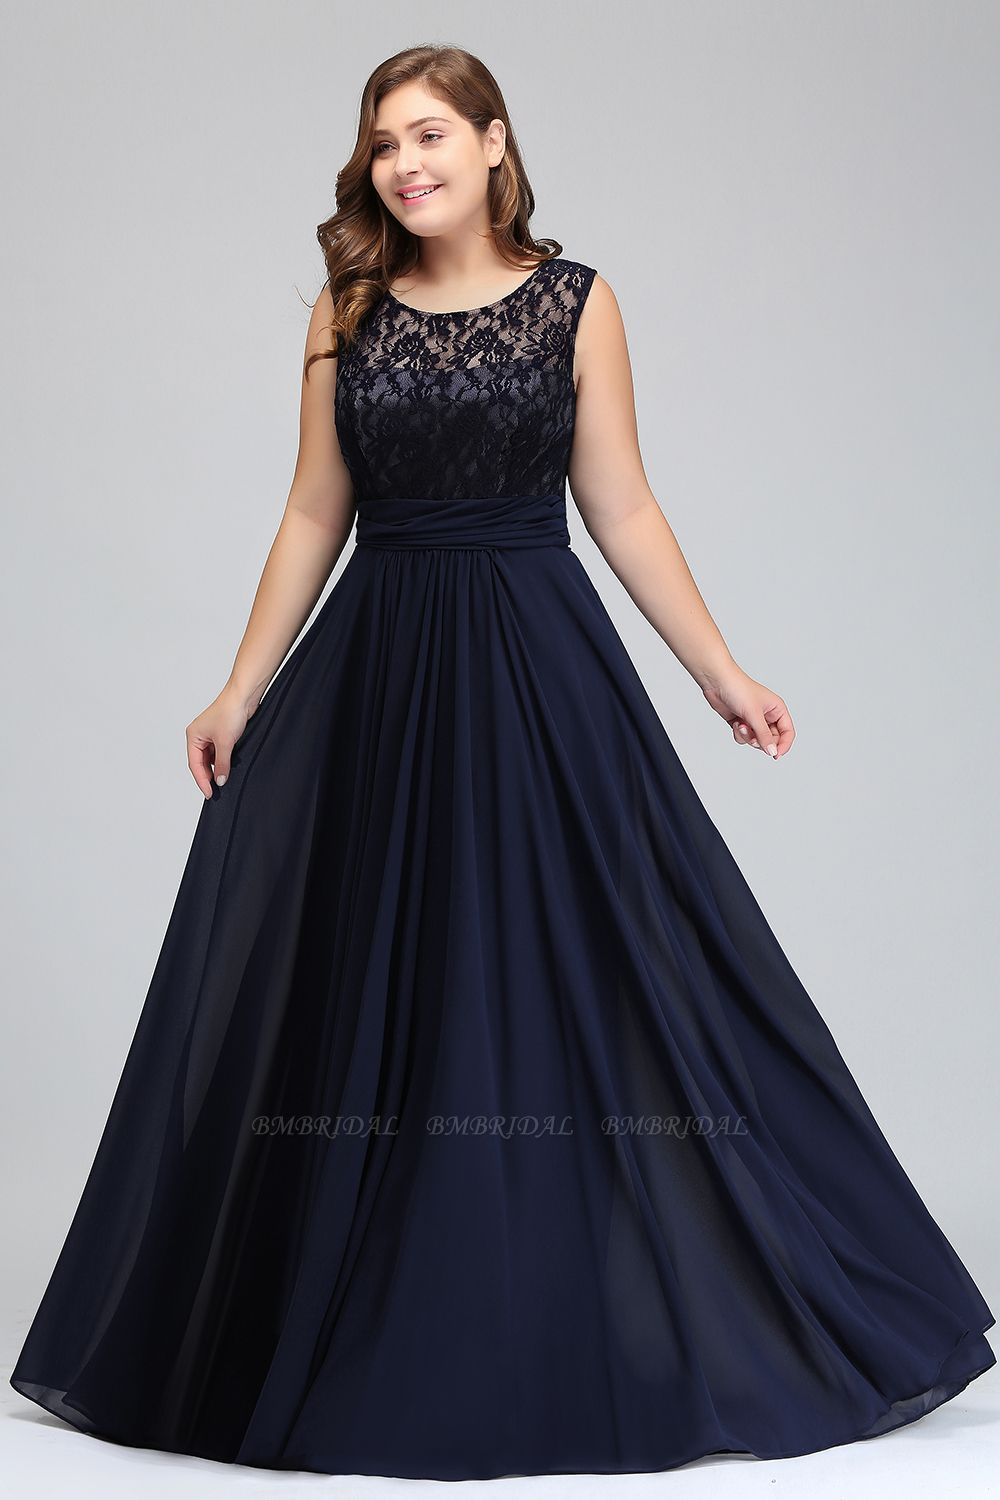 Plus Size Bridesmaid Dresses | Bmbridal